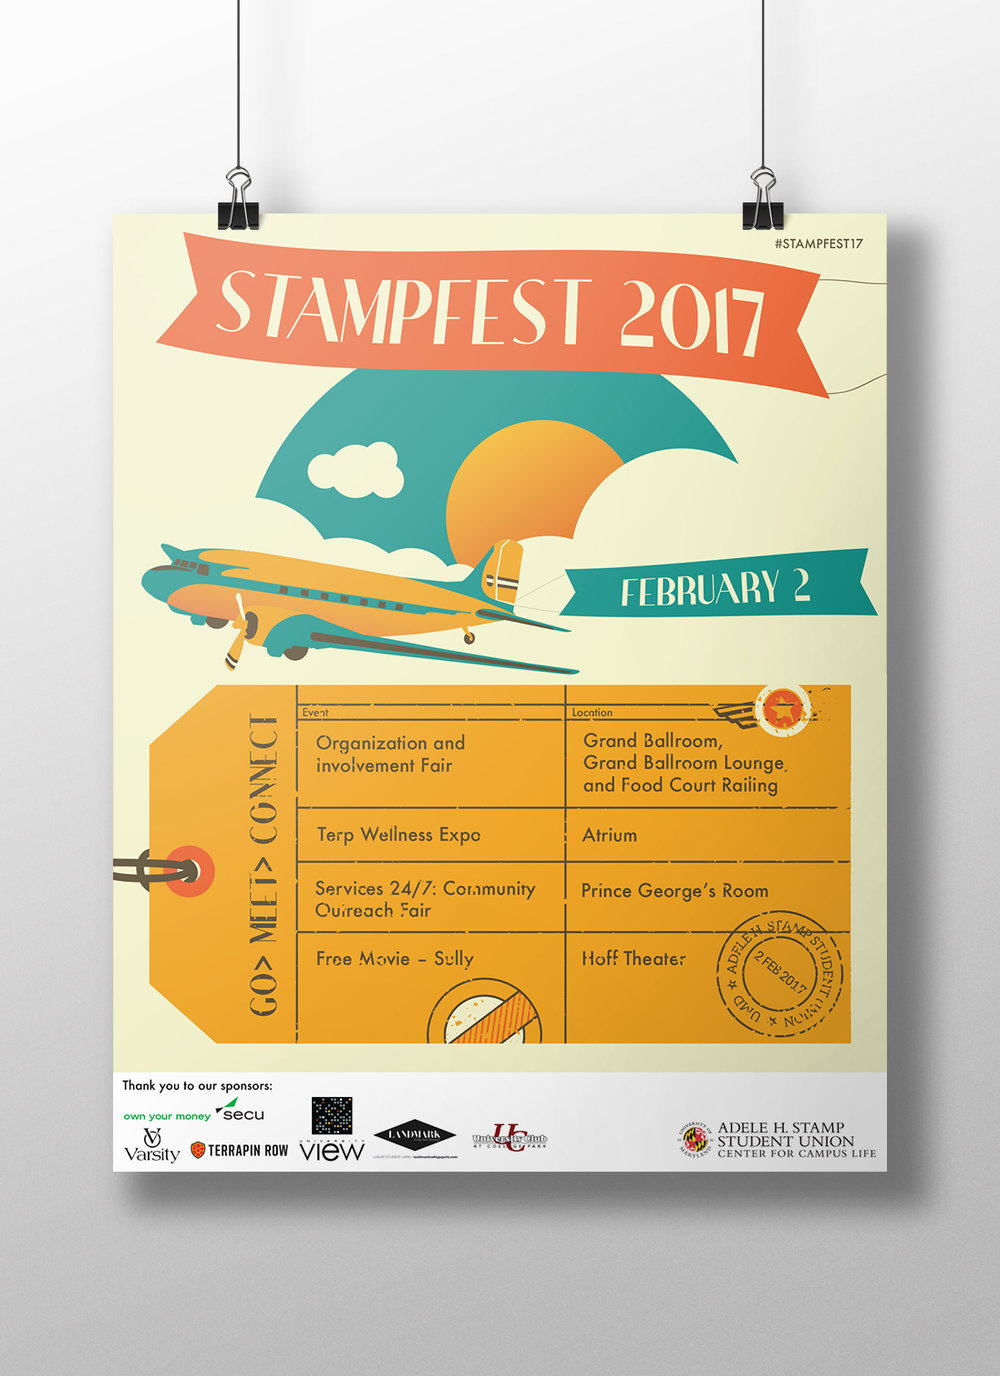 Made Vintage Travel Inspired Posters Pins T Shirts Social Media Images Web And TV To Be Displayed Throughout Stamp Promote StampFest